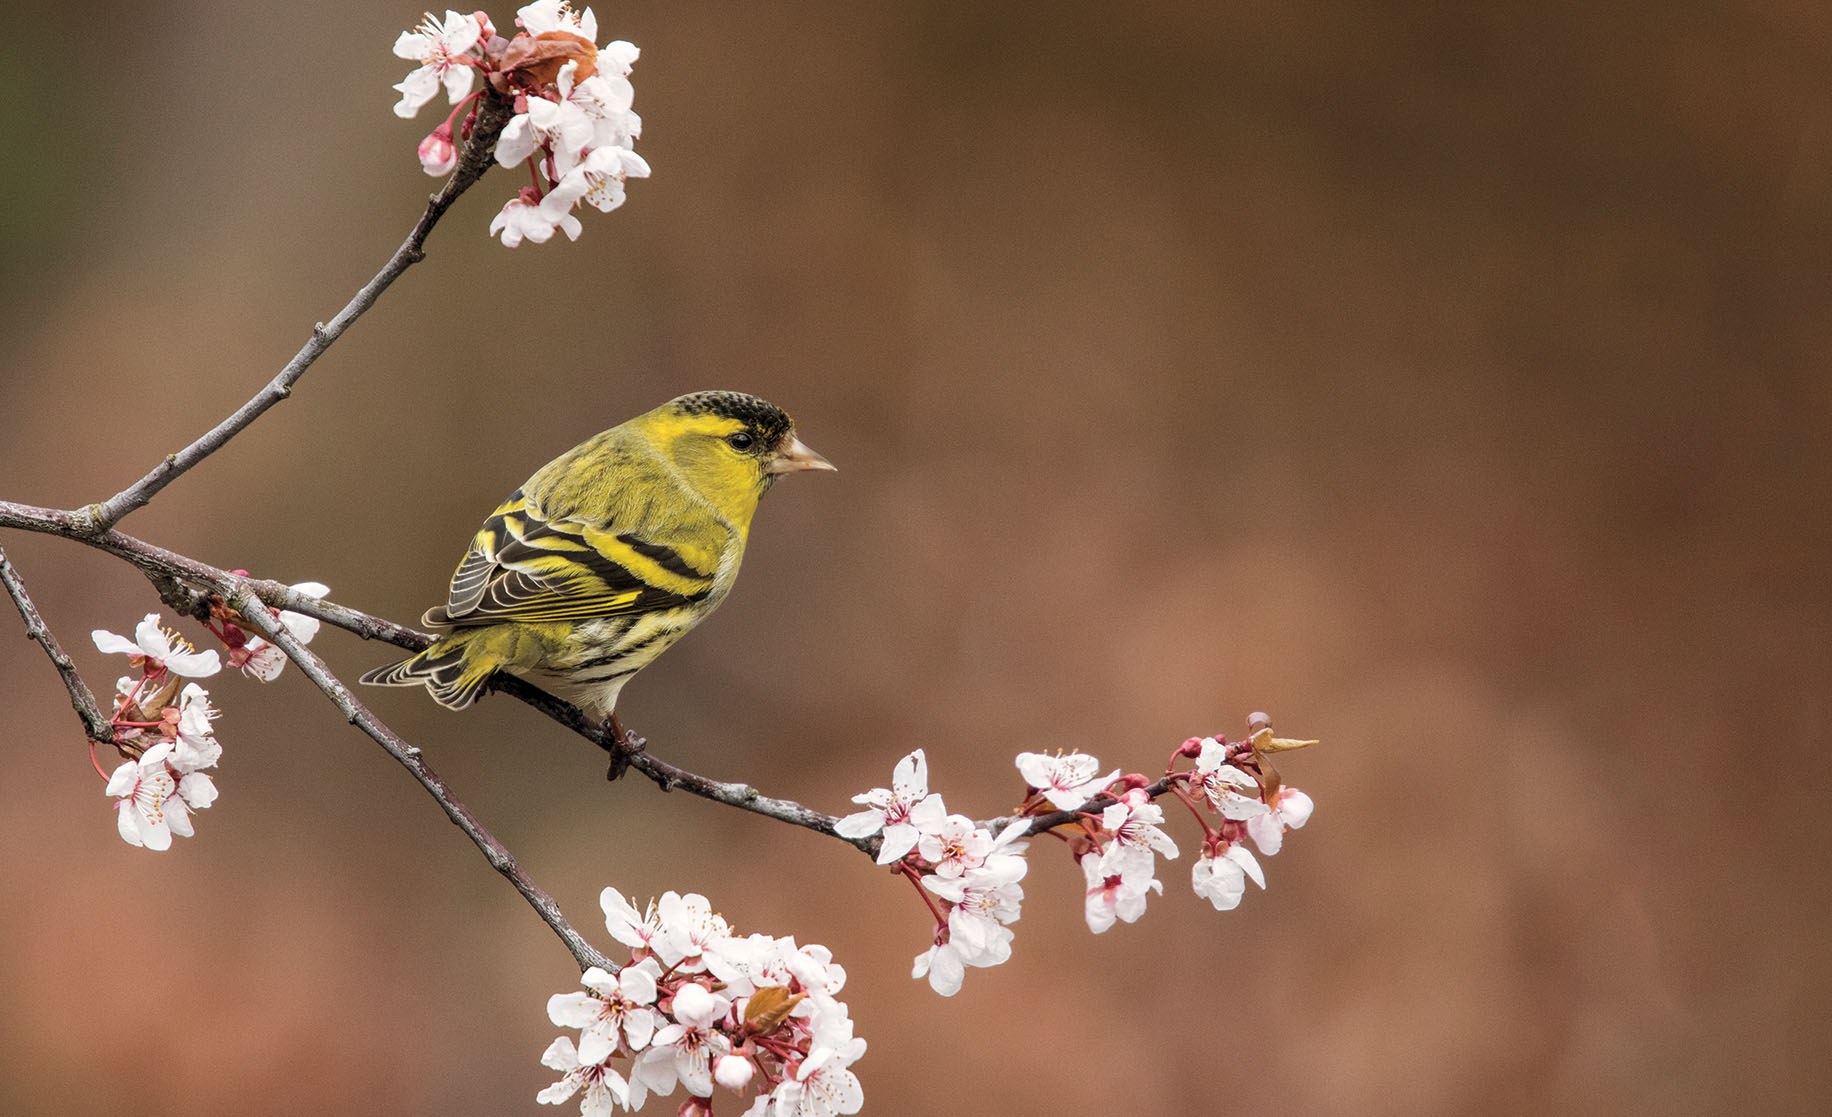 A photo of a siskin sitting on a branch of flowering cherry